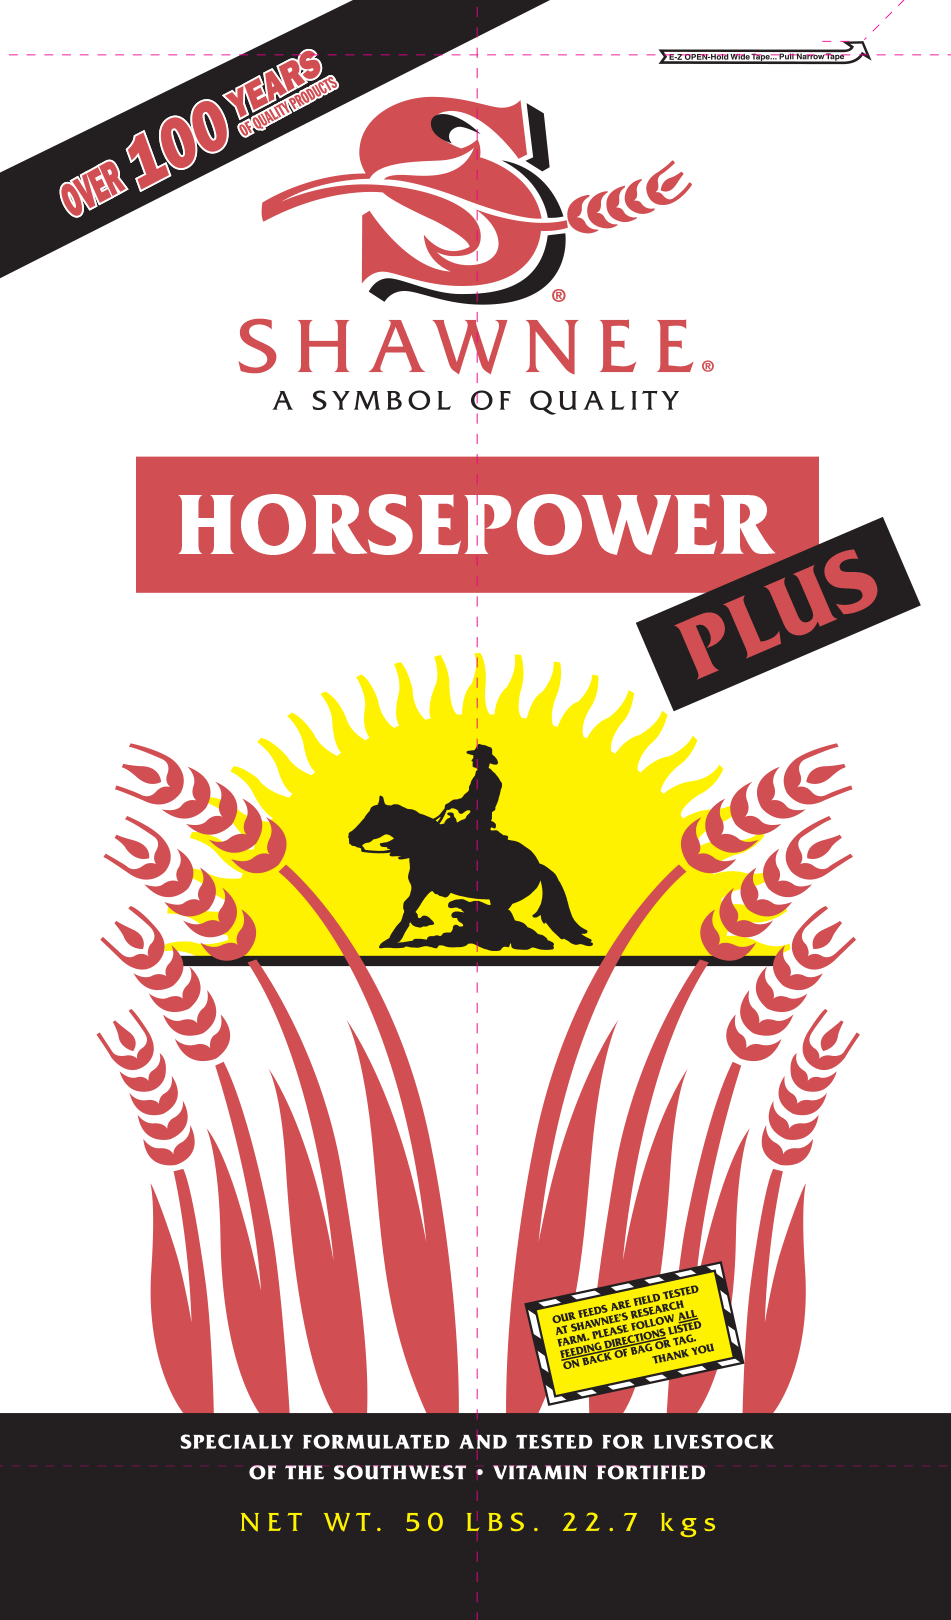 Shawnee Feed Products Horse Power Plus